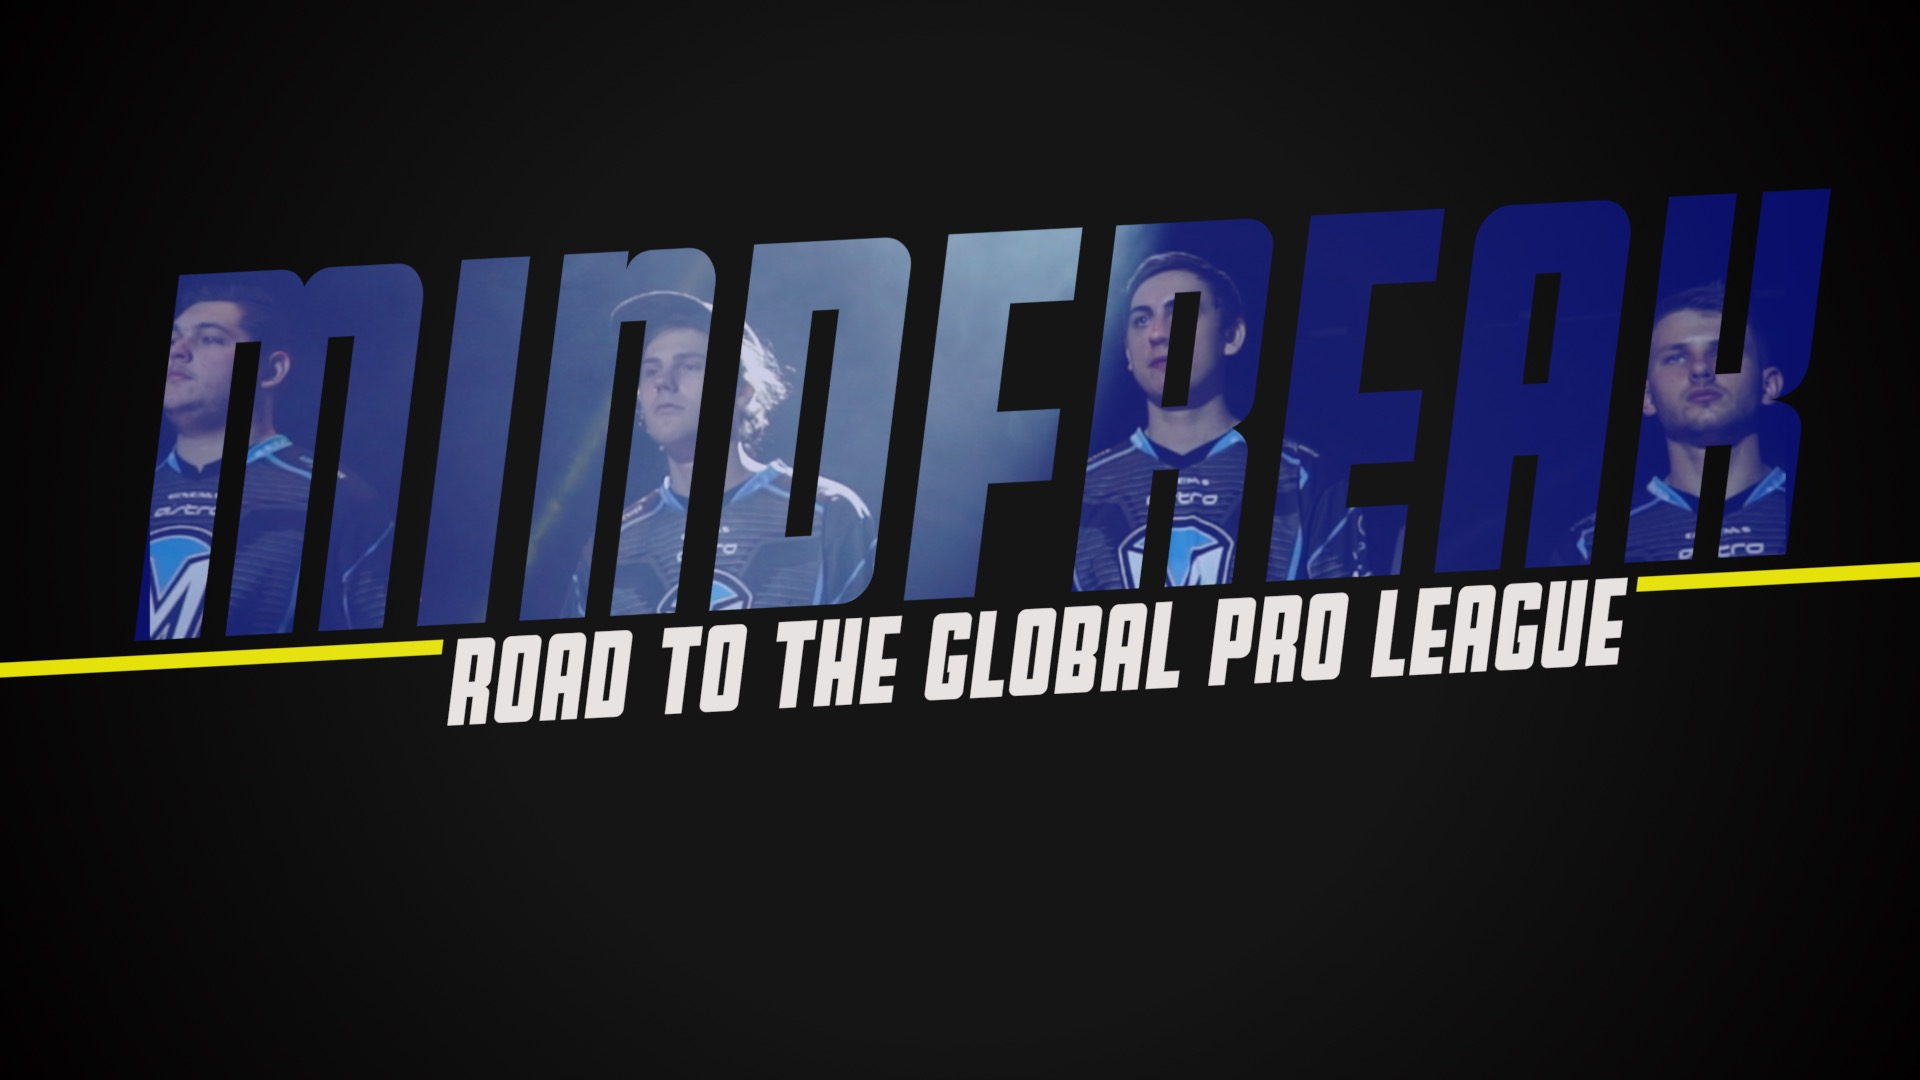 Road to the Global Pro League: Mindfreak